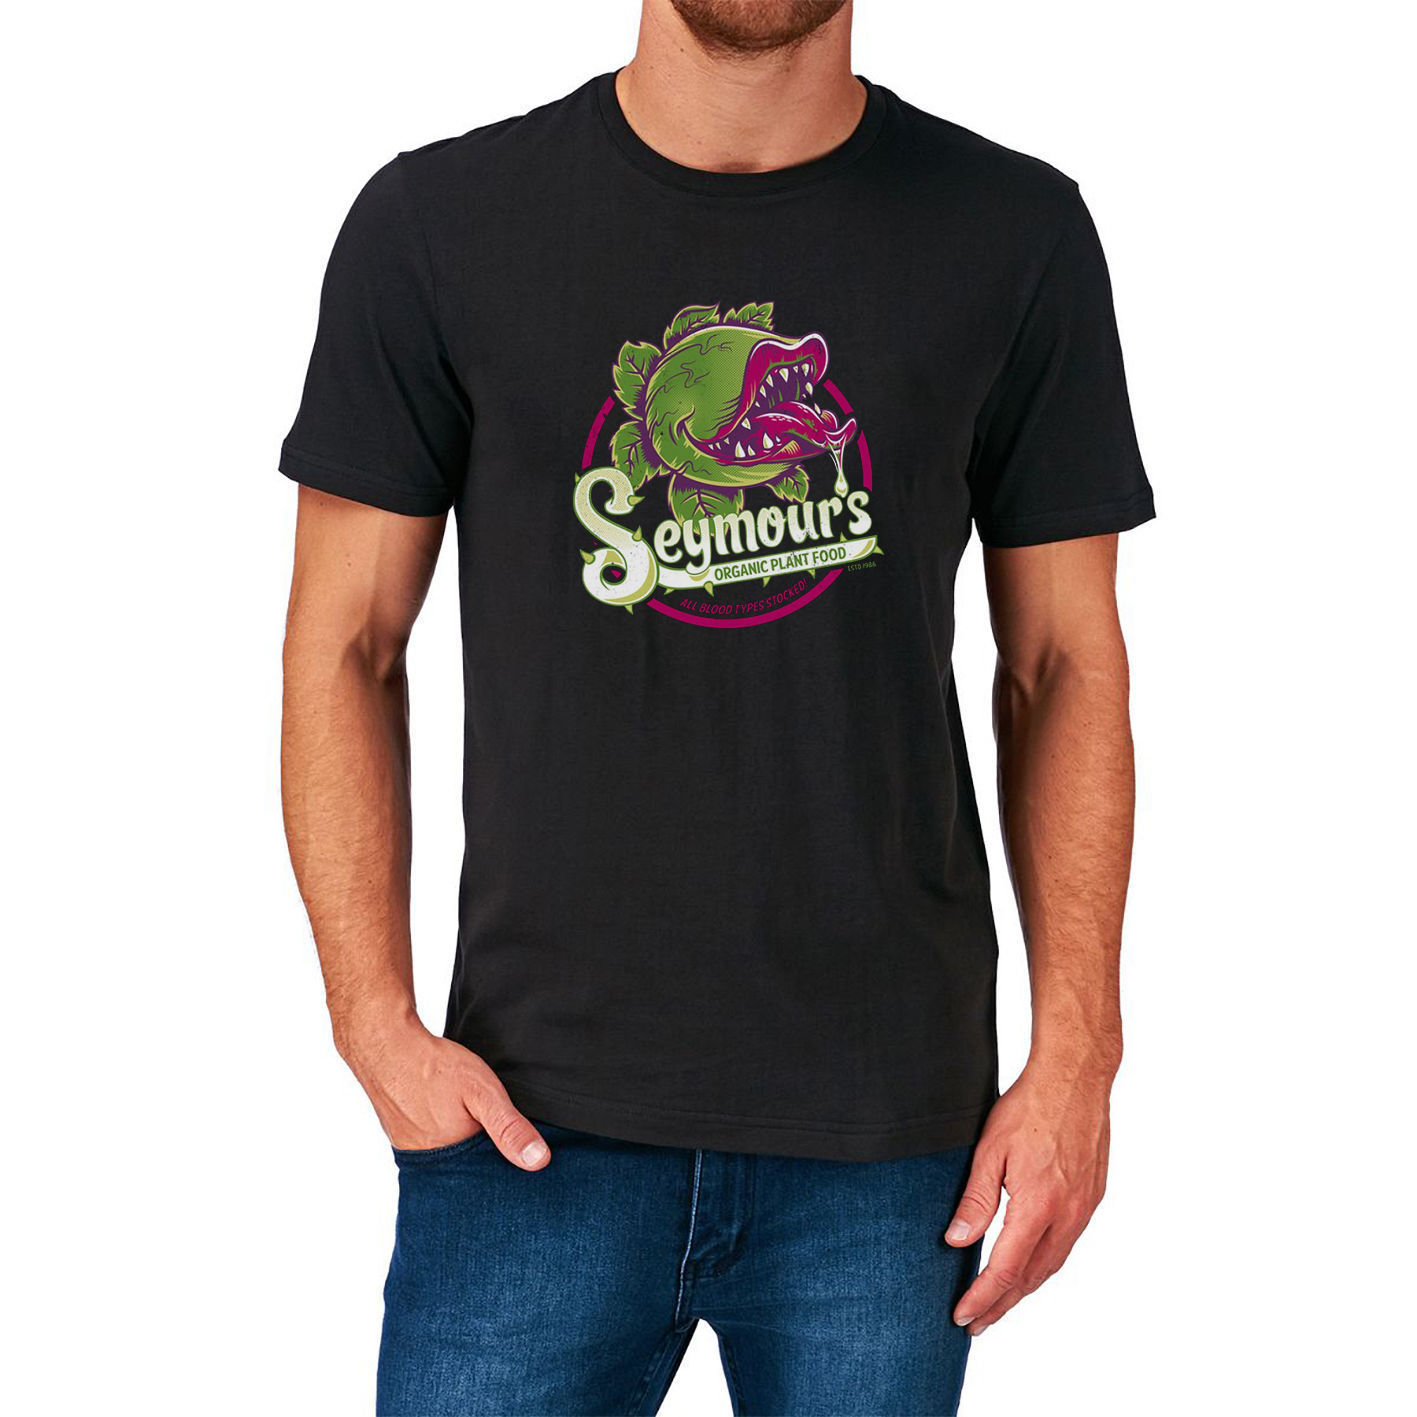 Limited Seymours Organic Plant Food Little Shop Of Horrors T-Shirt Size S-5XL